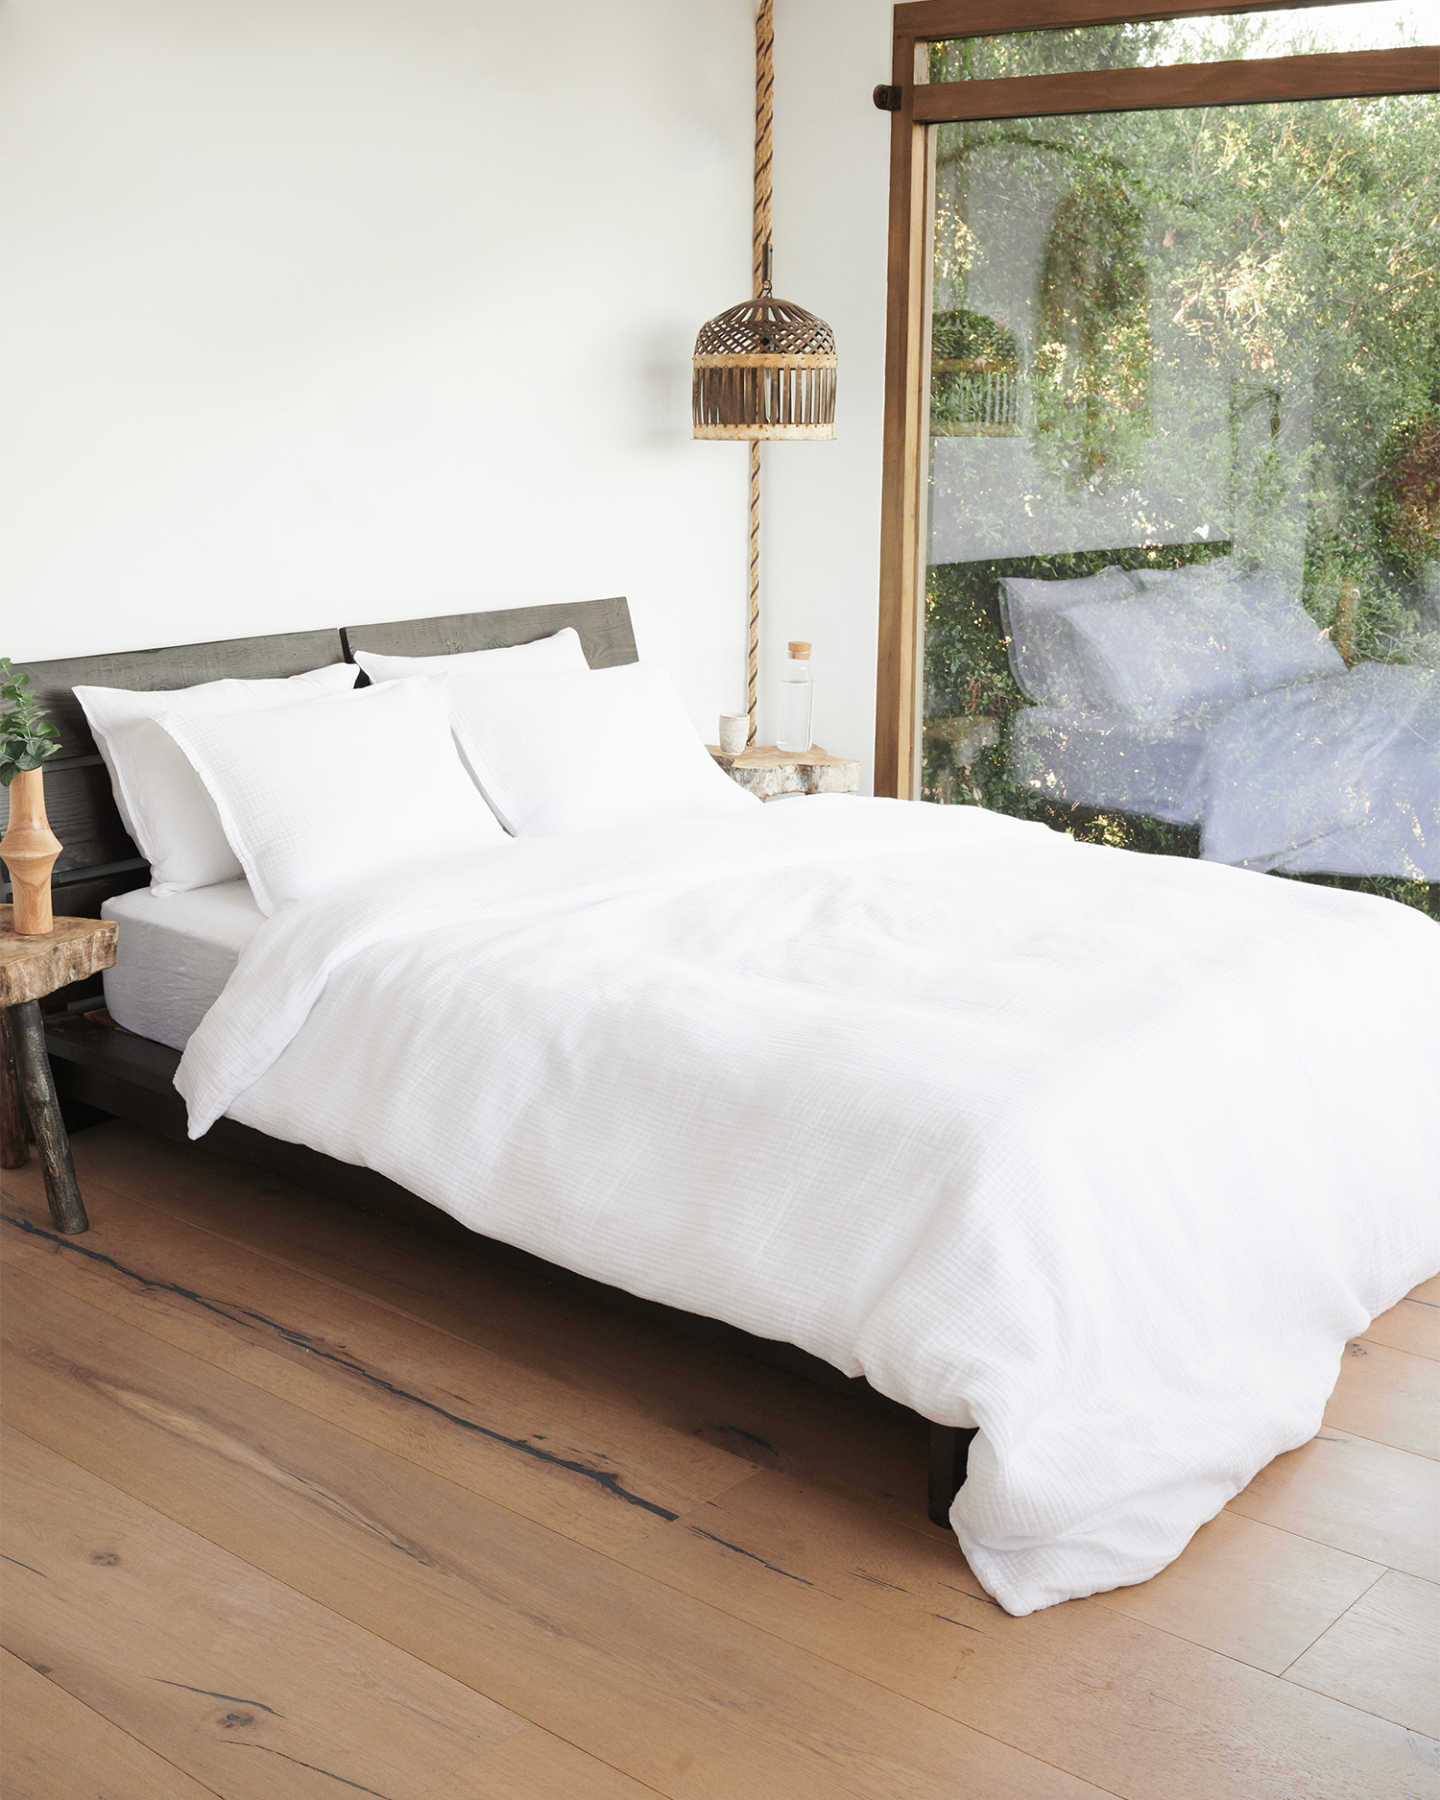 French Linen Duvet Cover Set - Rouching - 5